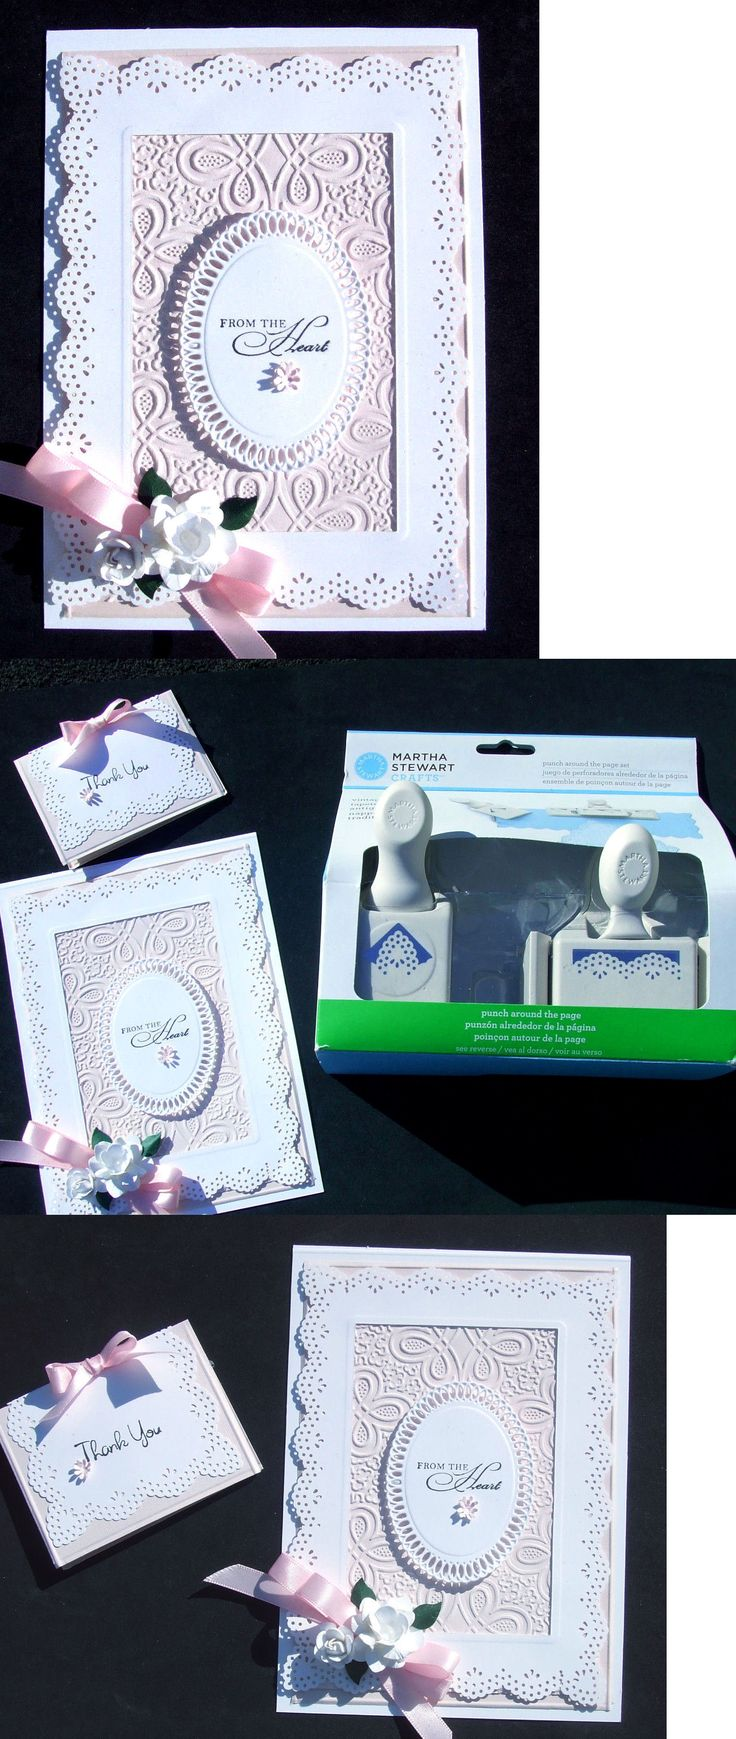 Paper Punches 11793: Rare Martha Stewart Vintage Doily Edge And Corner Punch New In Box Breath-Taking -> BUY IT NOW ONLY: $39 on eBay!